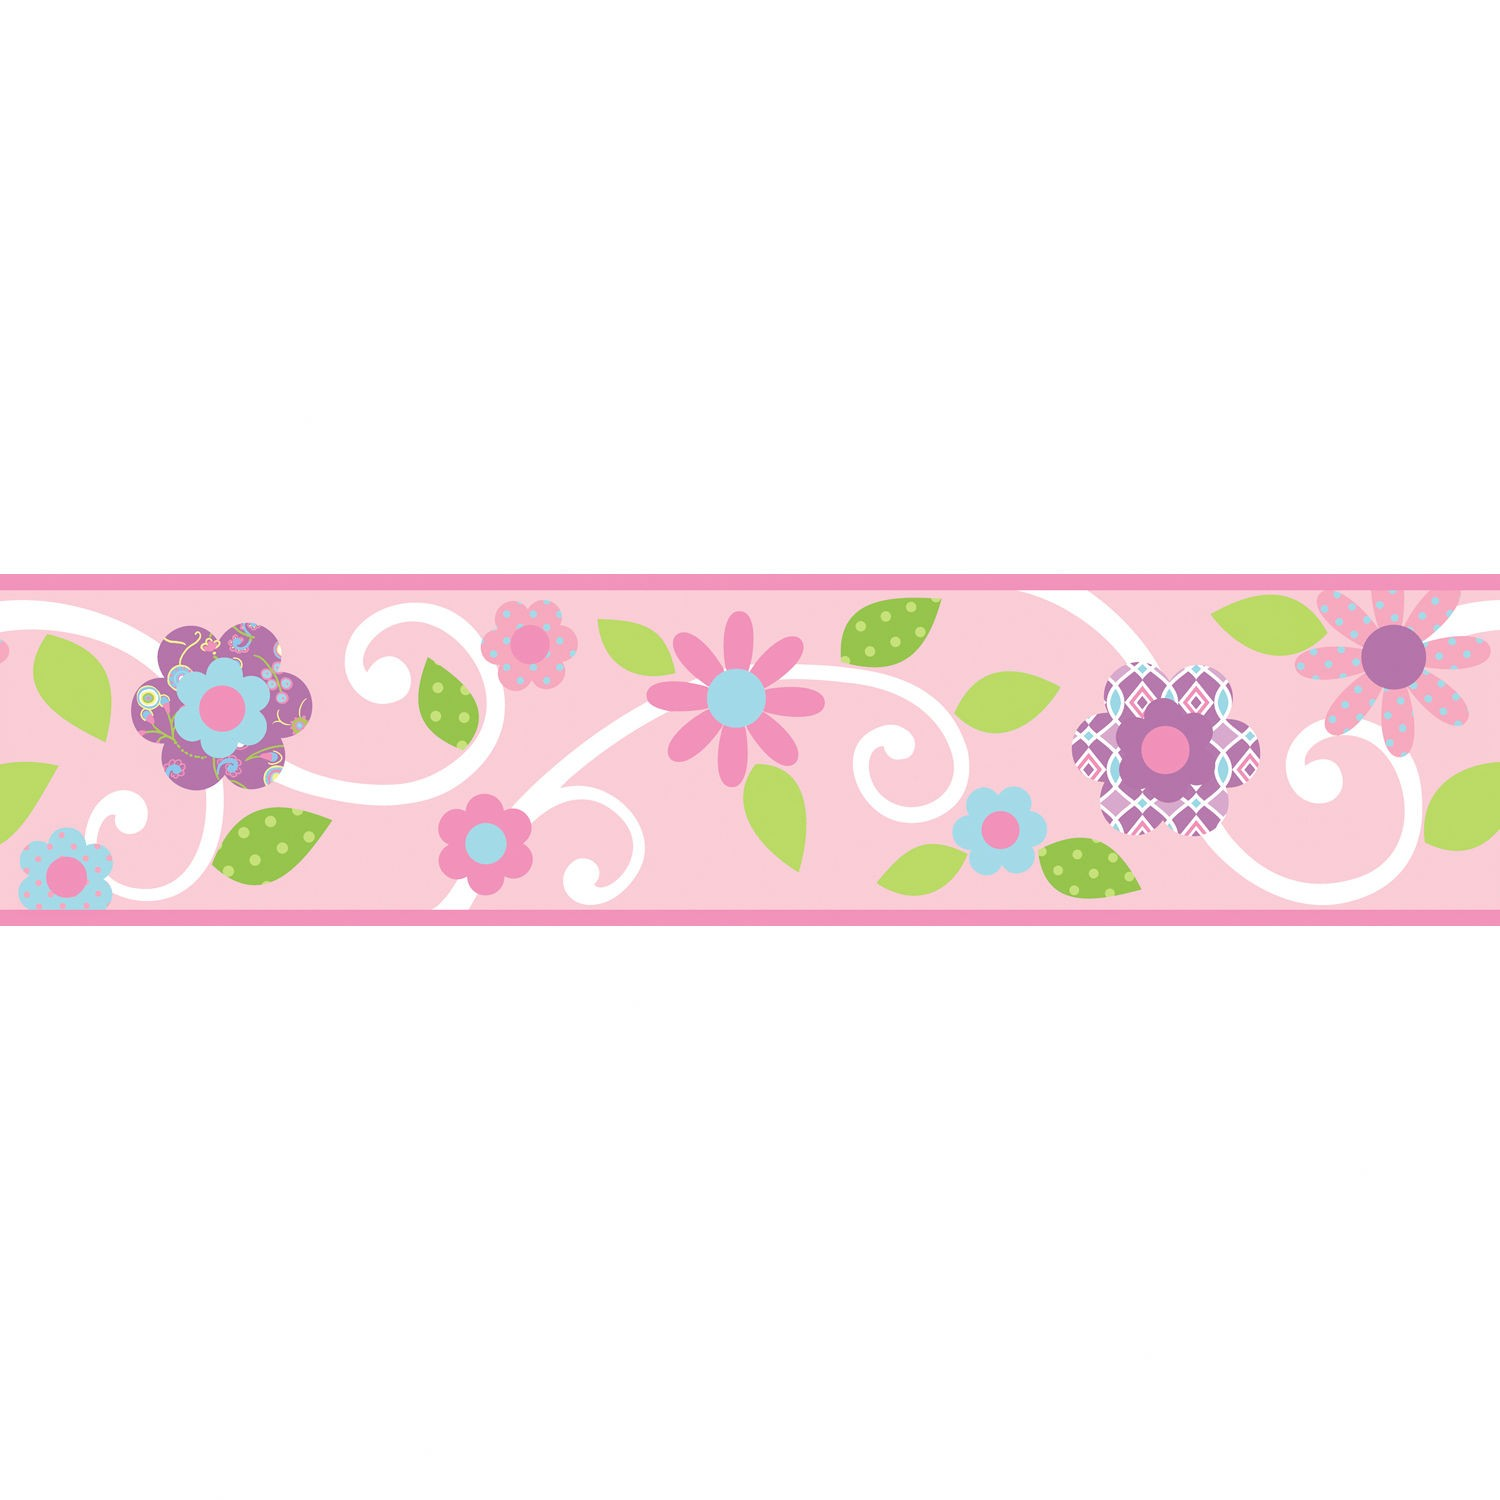 Room Mates Studio Designs Scroll Floral Wall Border in Magenta 1500x1500